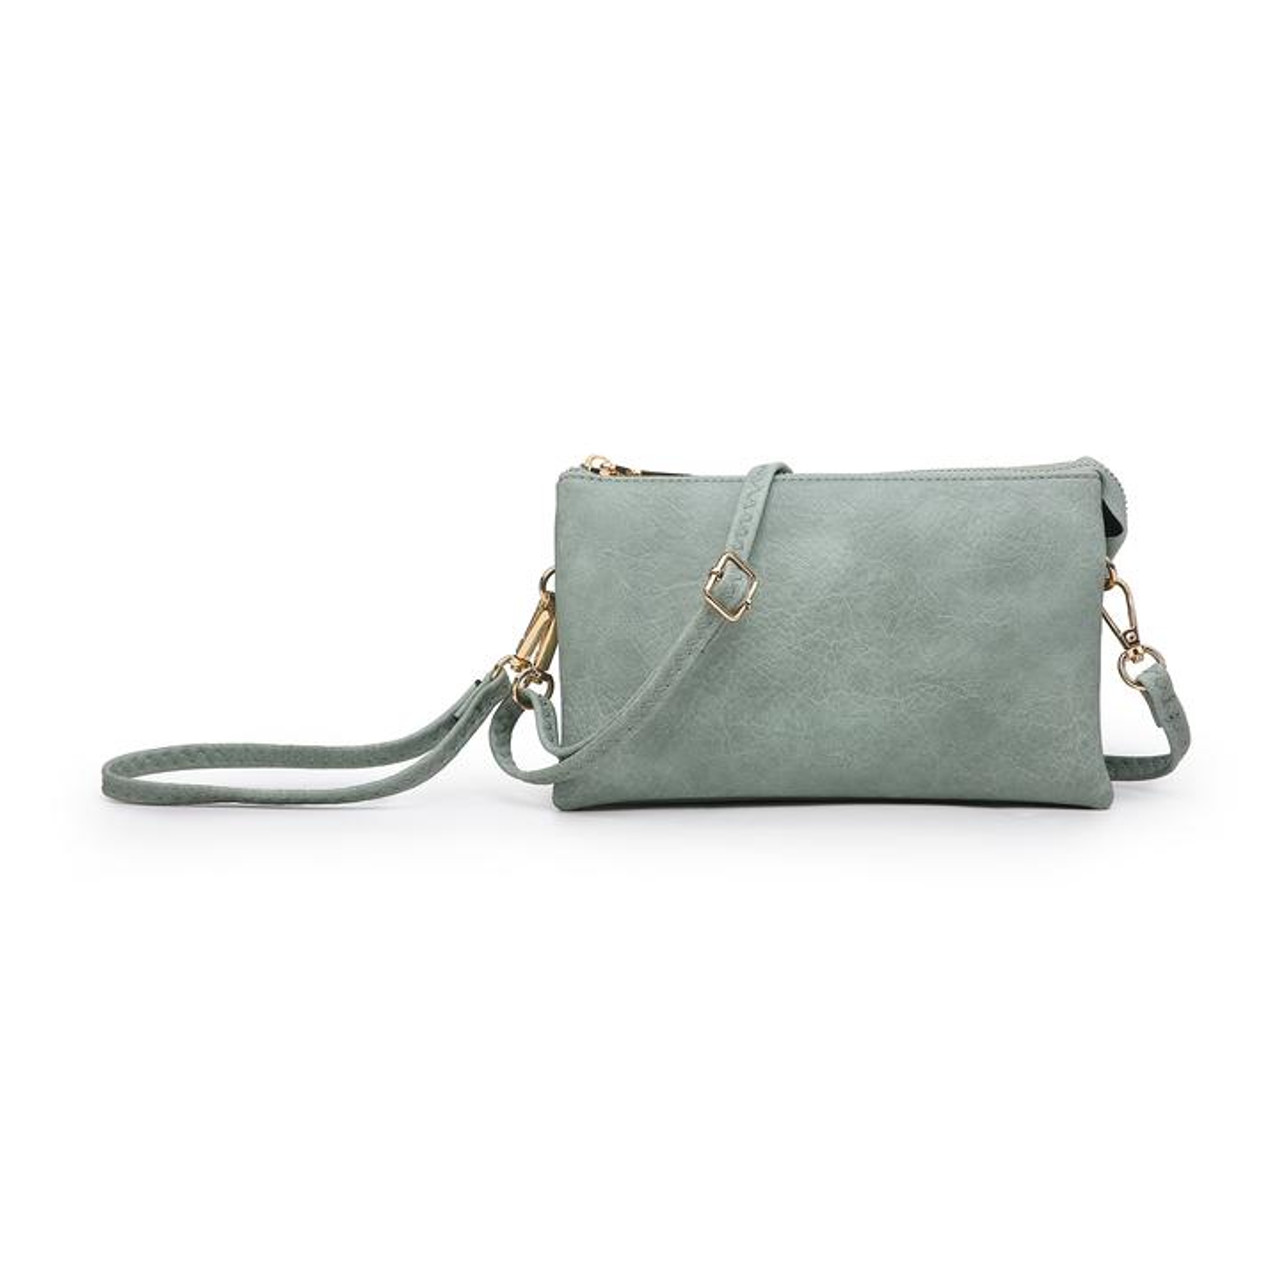 Wristlet and adjustable crossbody strap included. Three separate interior compartments with six credit card slots. Top zipper closure